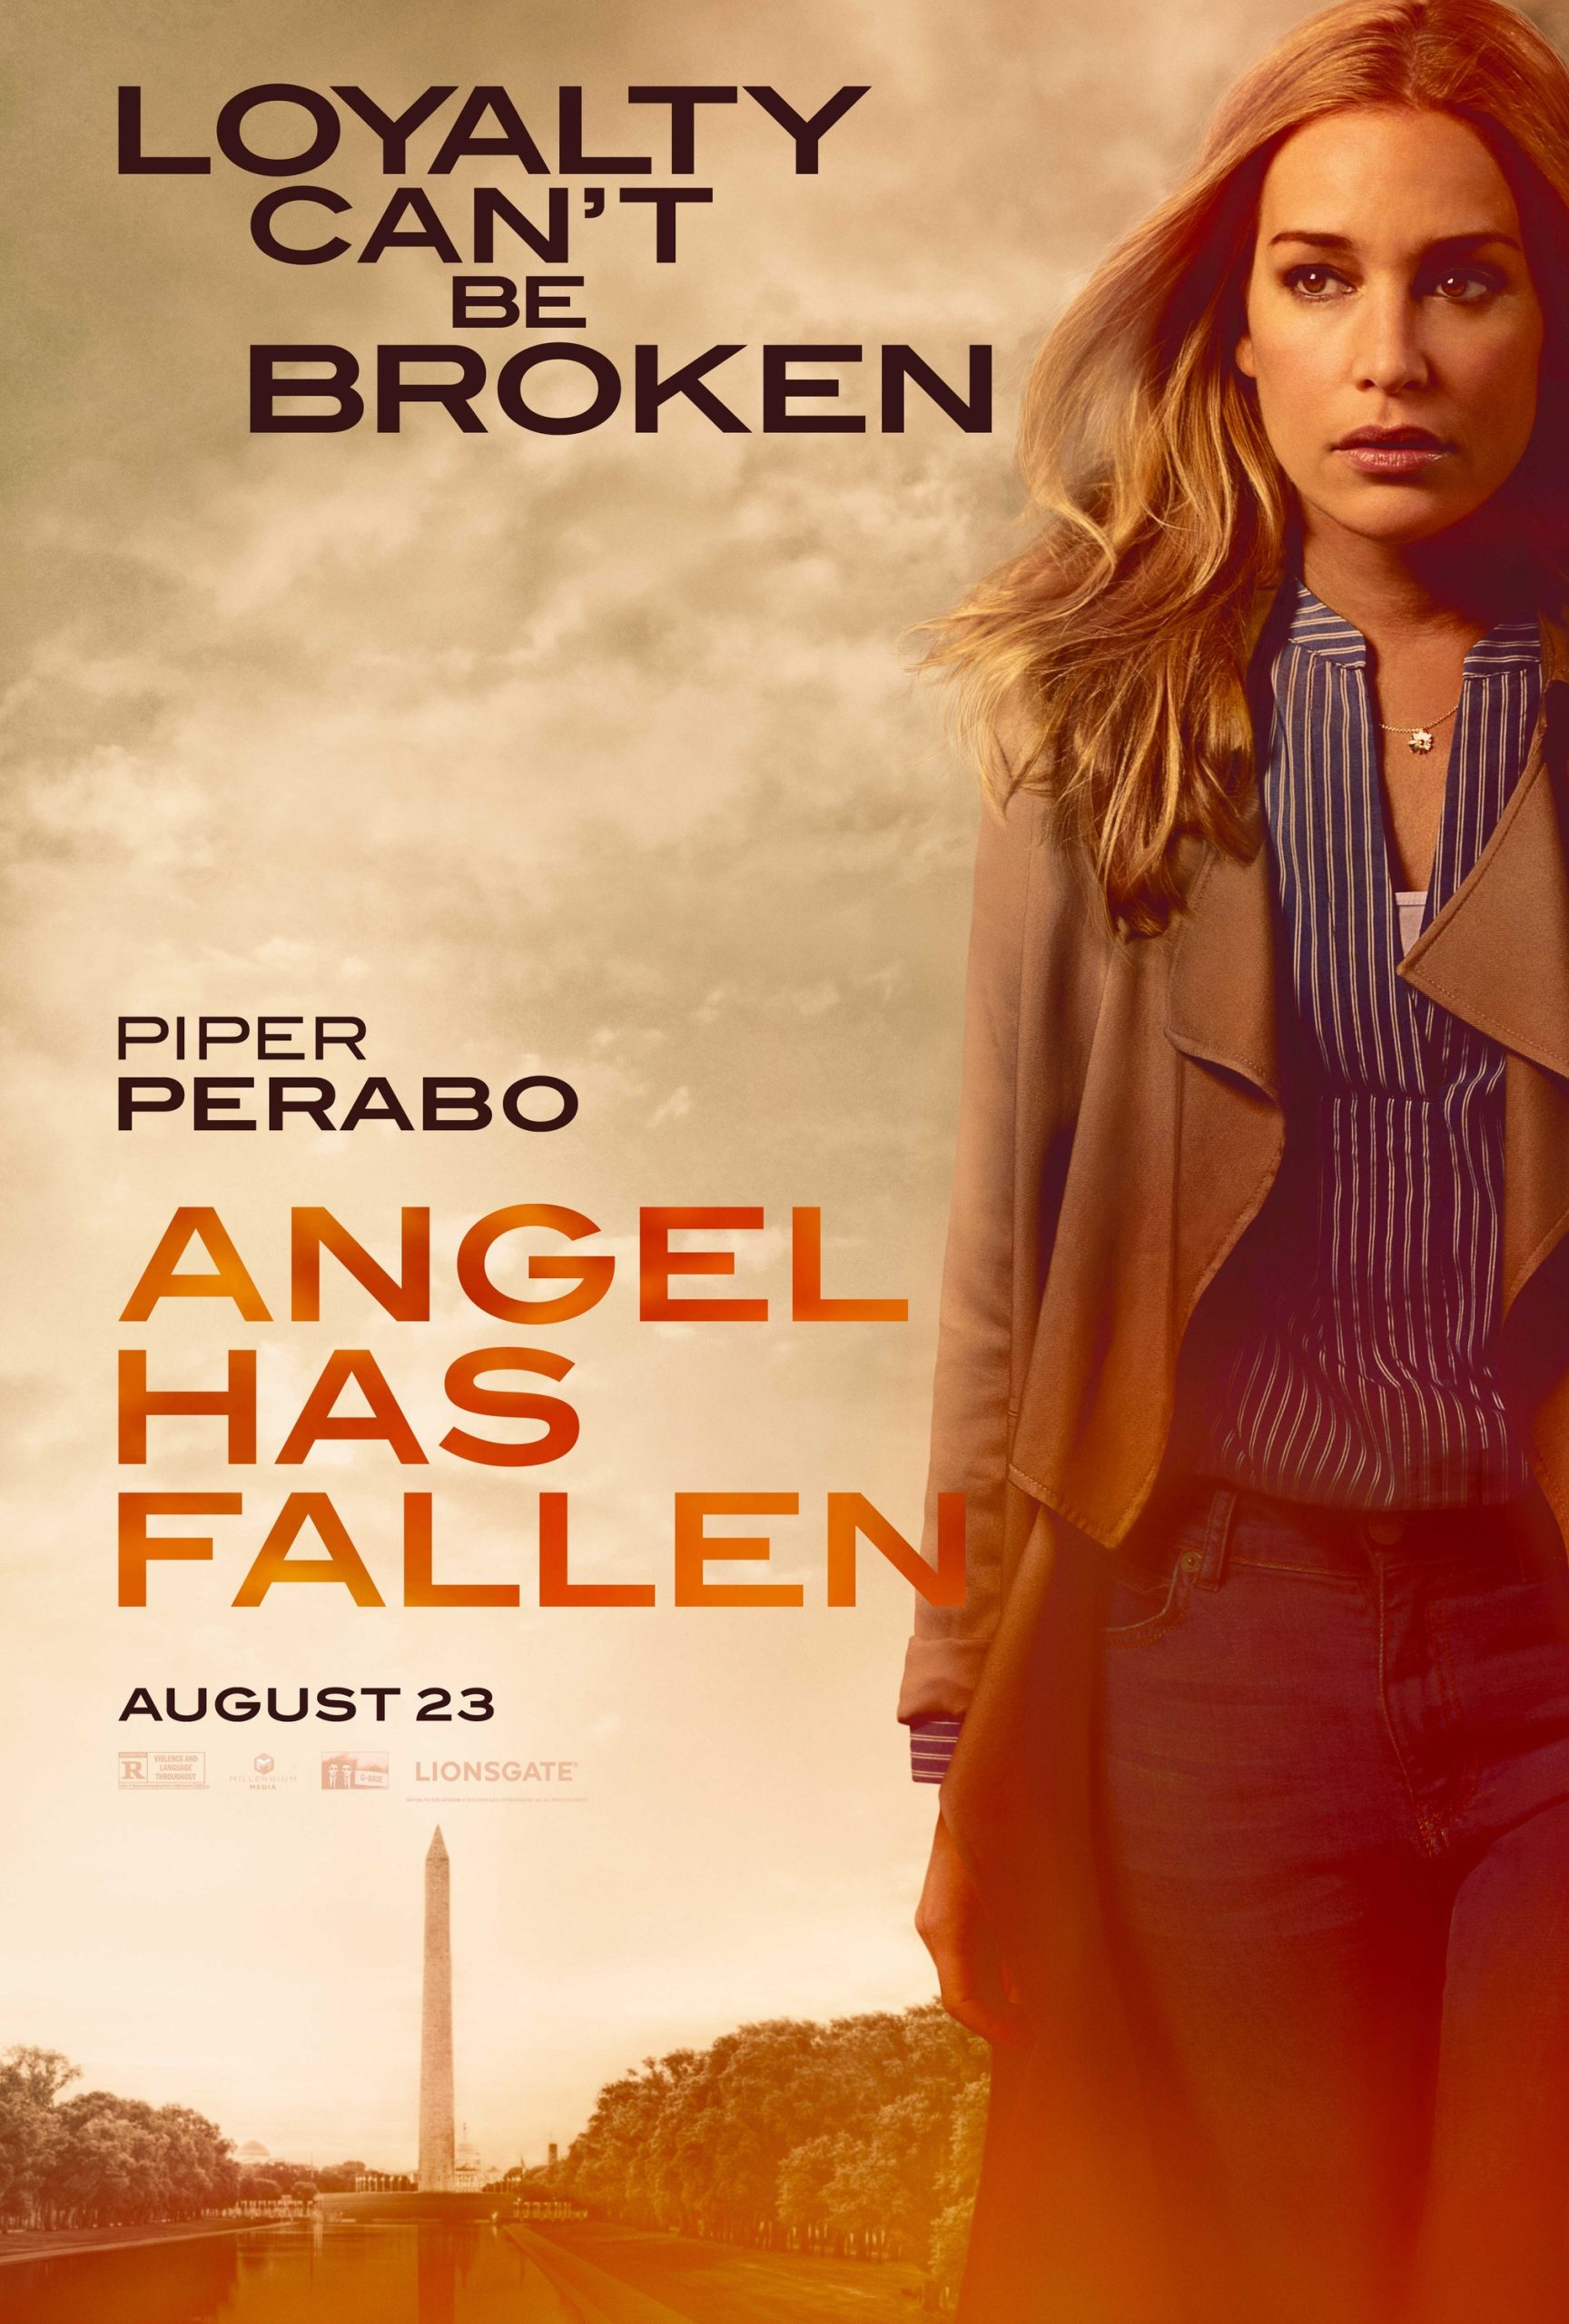 Angel Has Fallen Character Posters Piper Perabo as Leah Banning